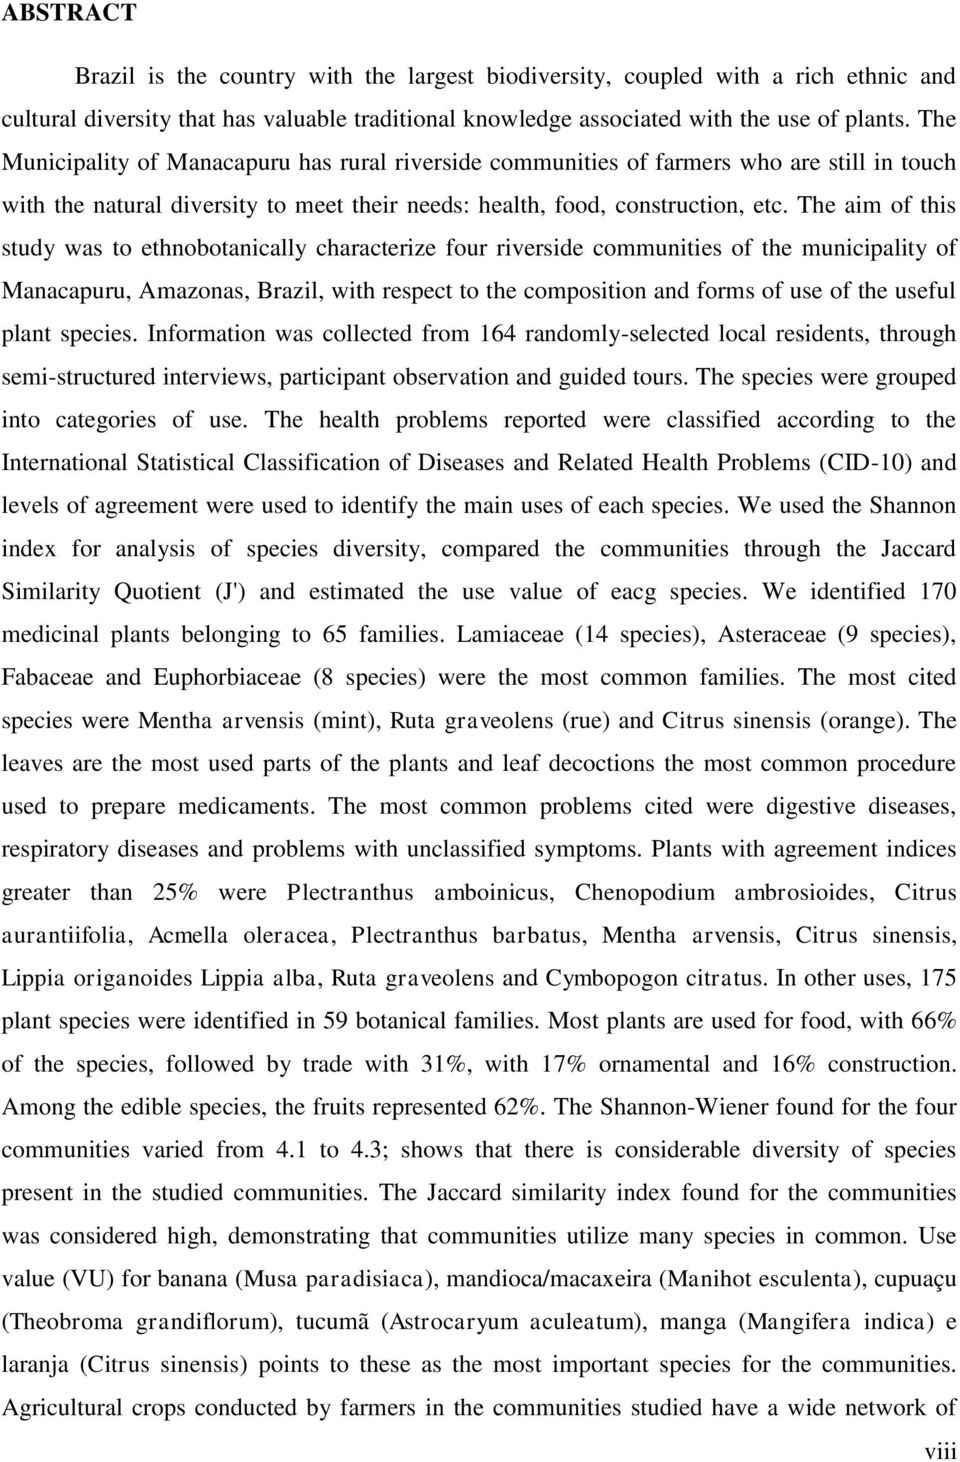 The aim of this study was to ethnobotanically characterize four riverside communities of the municipality of Manacapuru, Amazonas, Brazil, with respect to the composition and forms of use of the